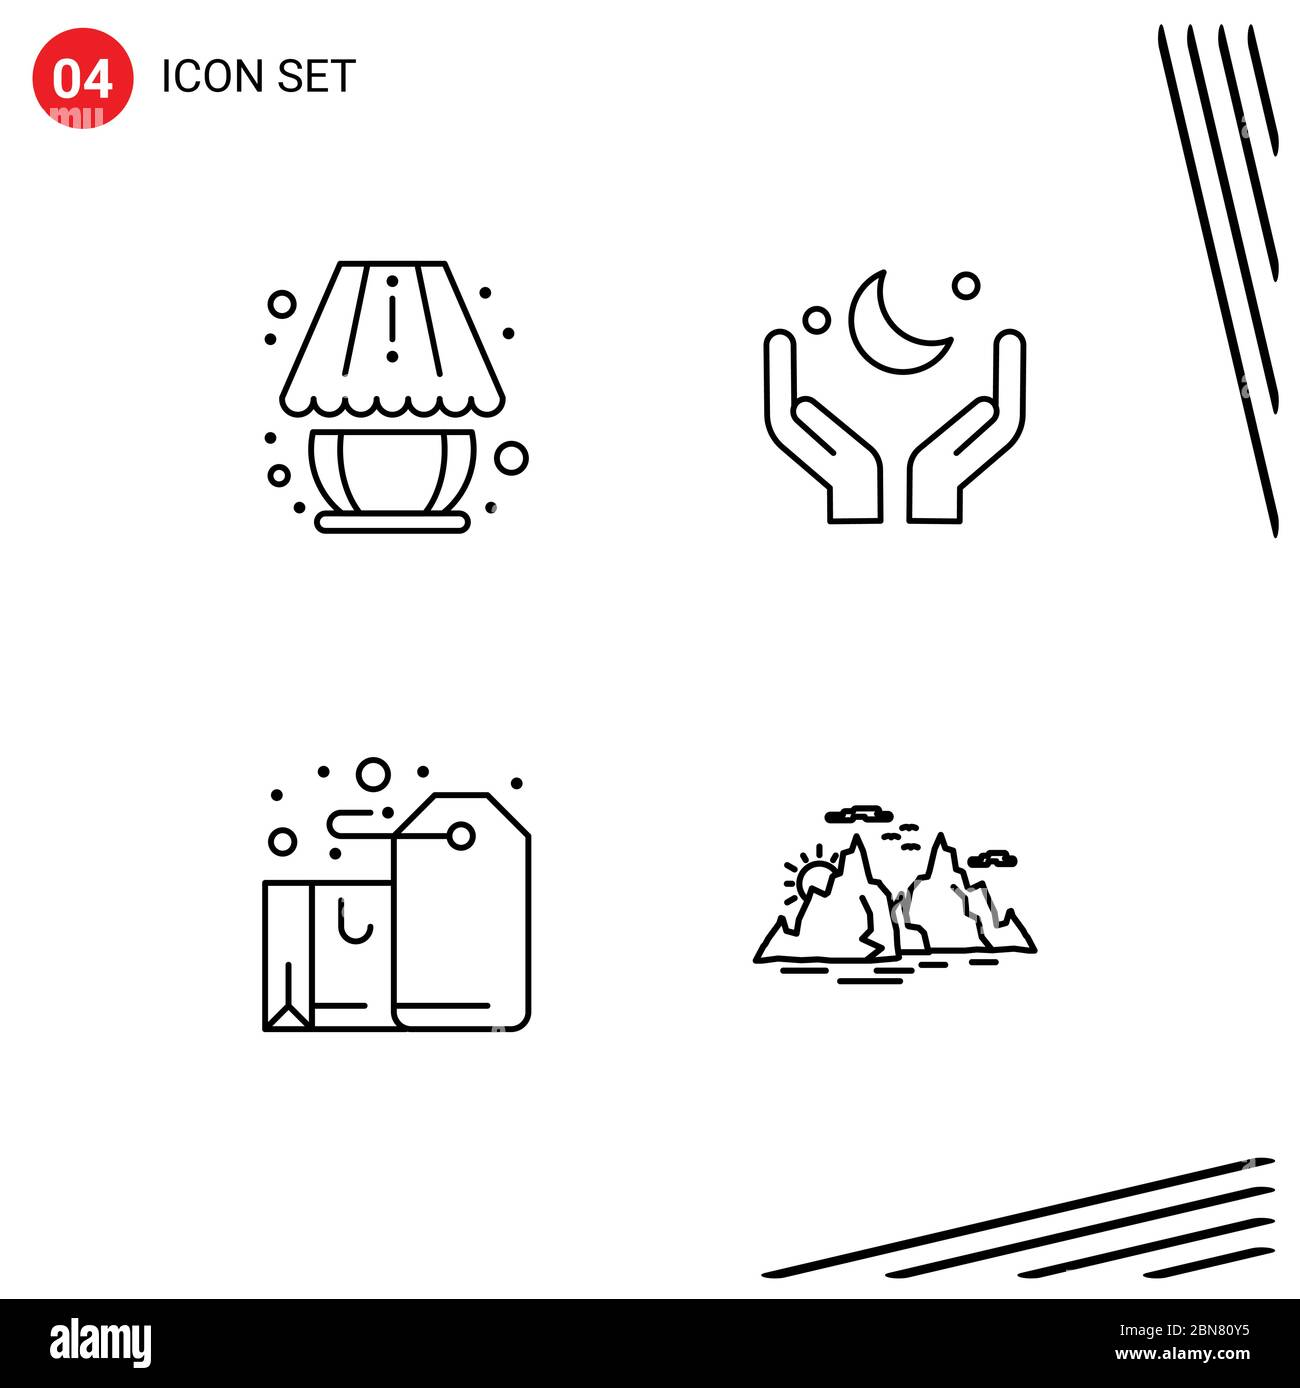 4 Line Concept For Websites Mobile And Apps Home Decorate Badge Lighting Moon Gift Editable Vector Design Elements Stock Vector Image Art Alamy